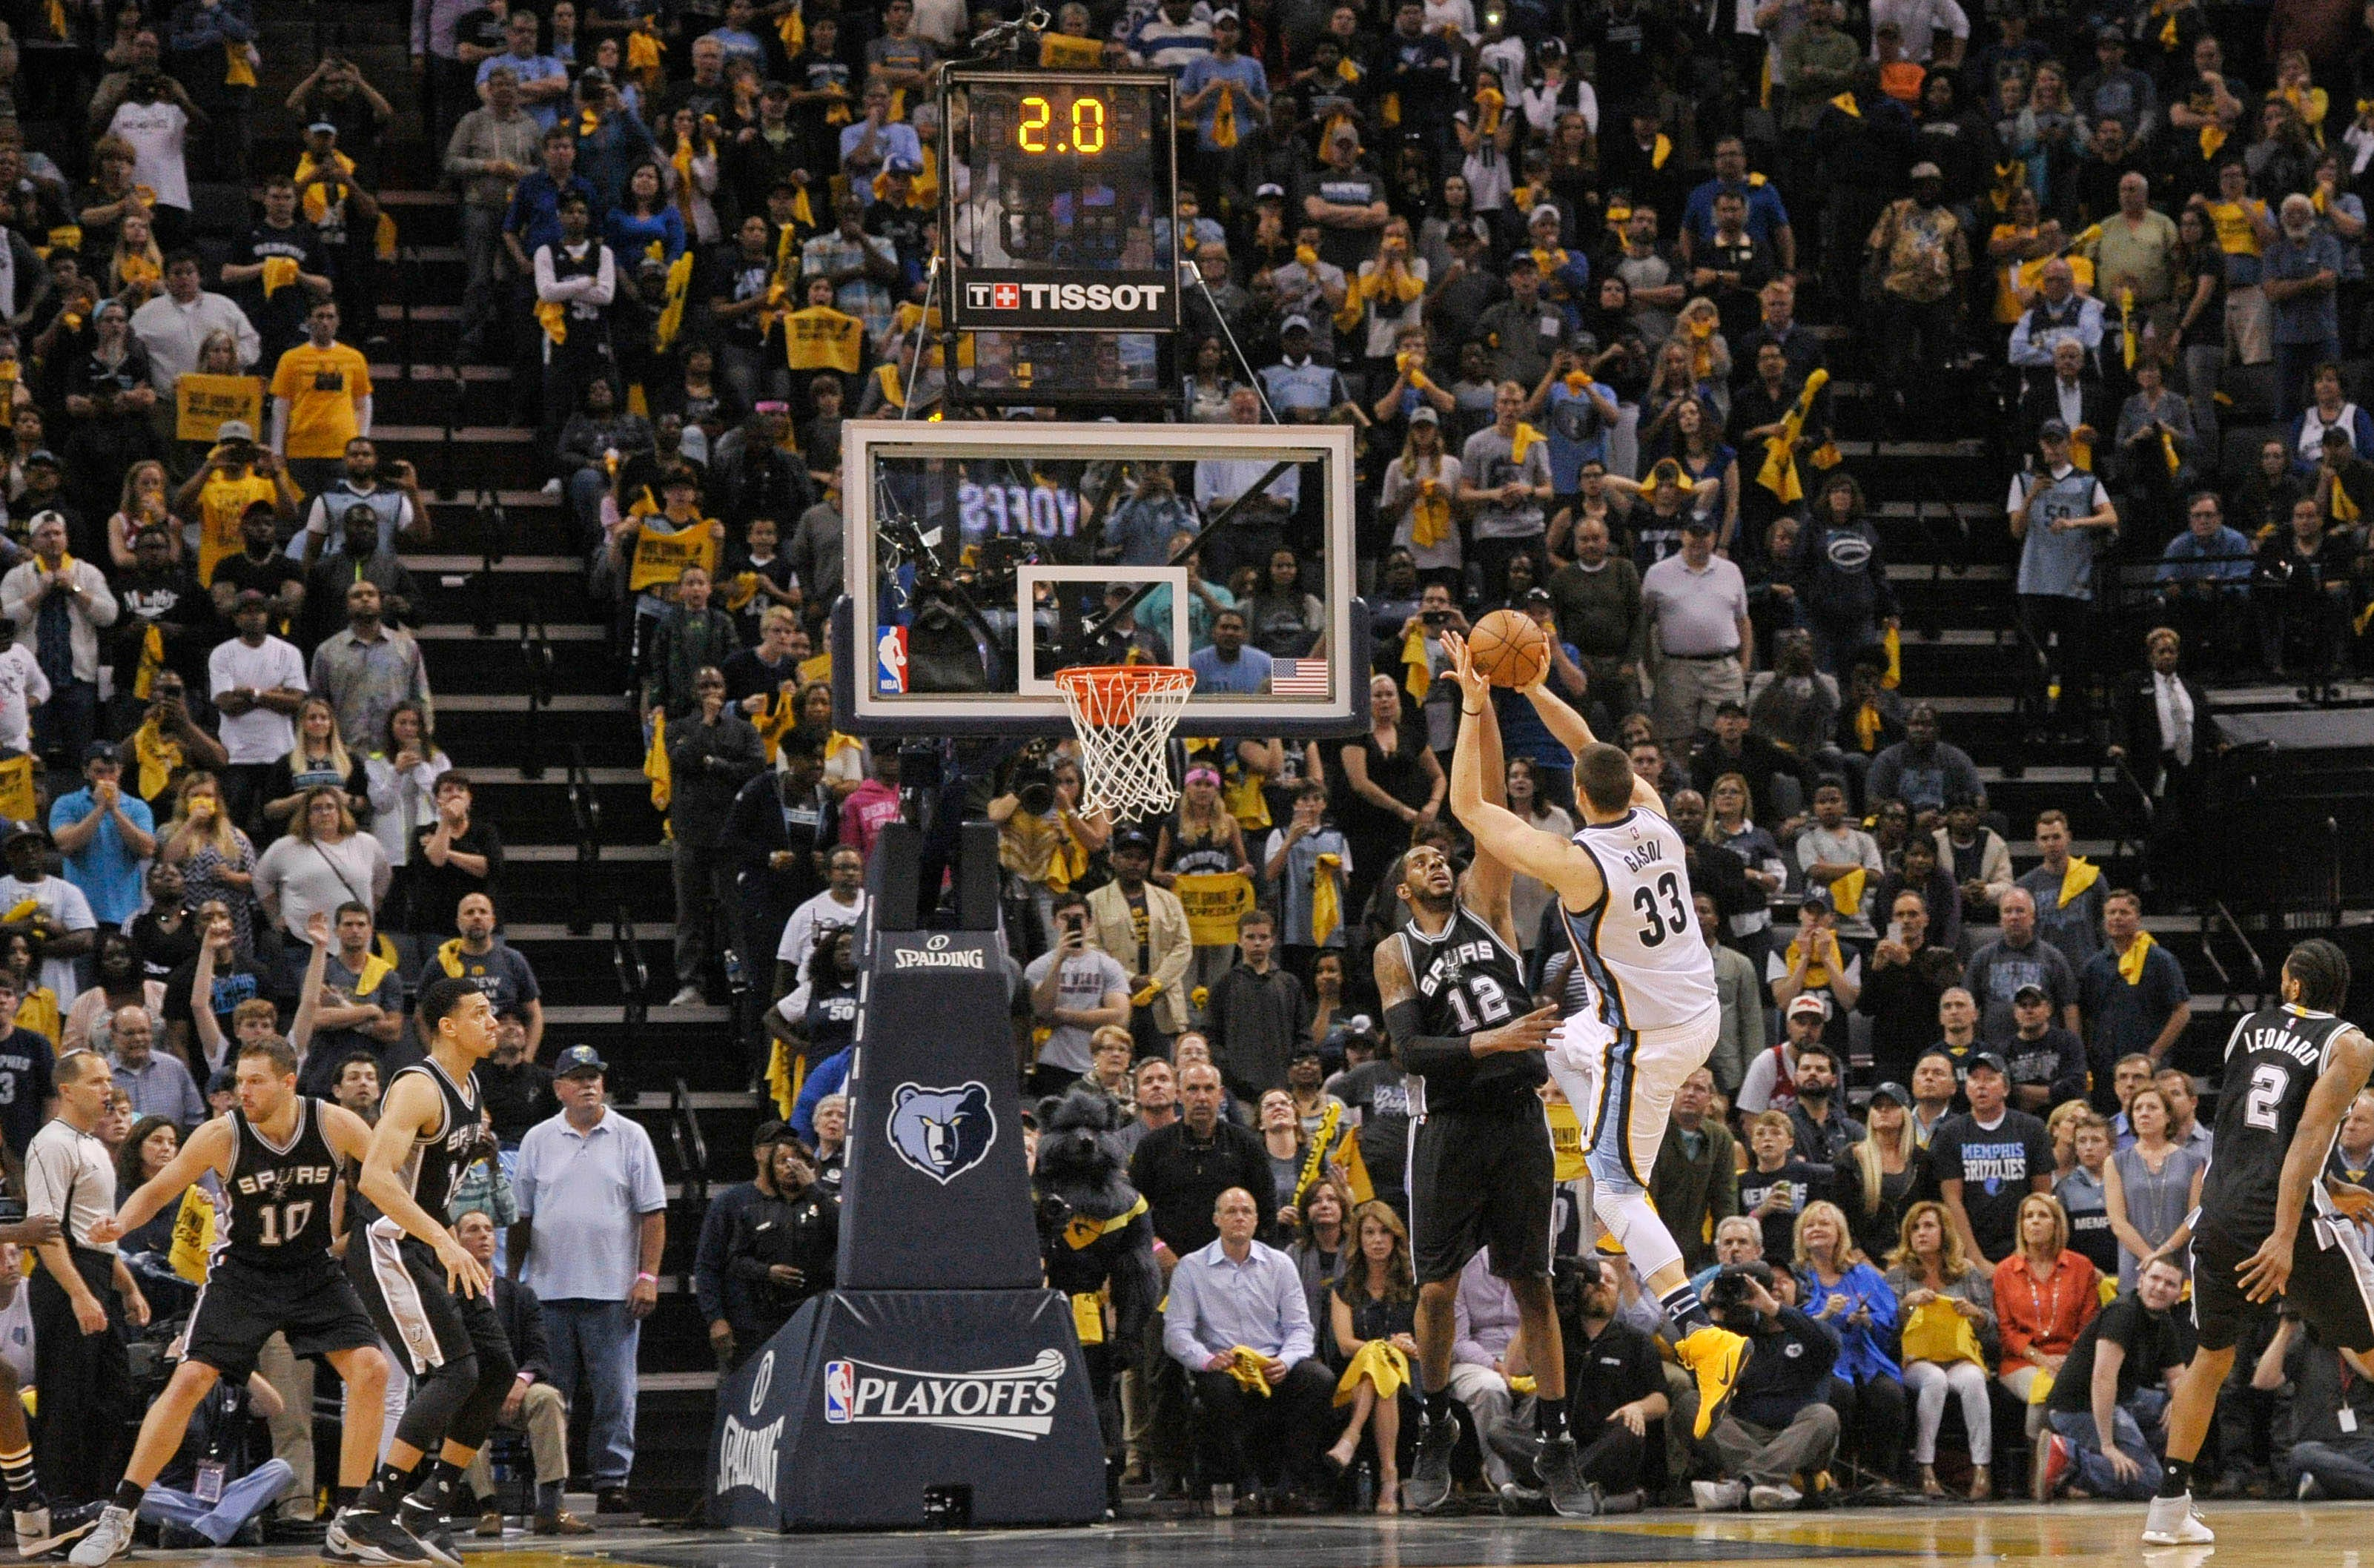 Marc Gasol's game-winning shot lifts Grizzlies to OT win against Spurs